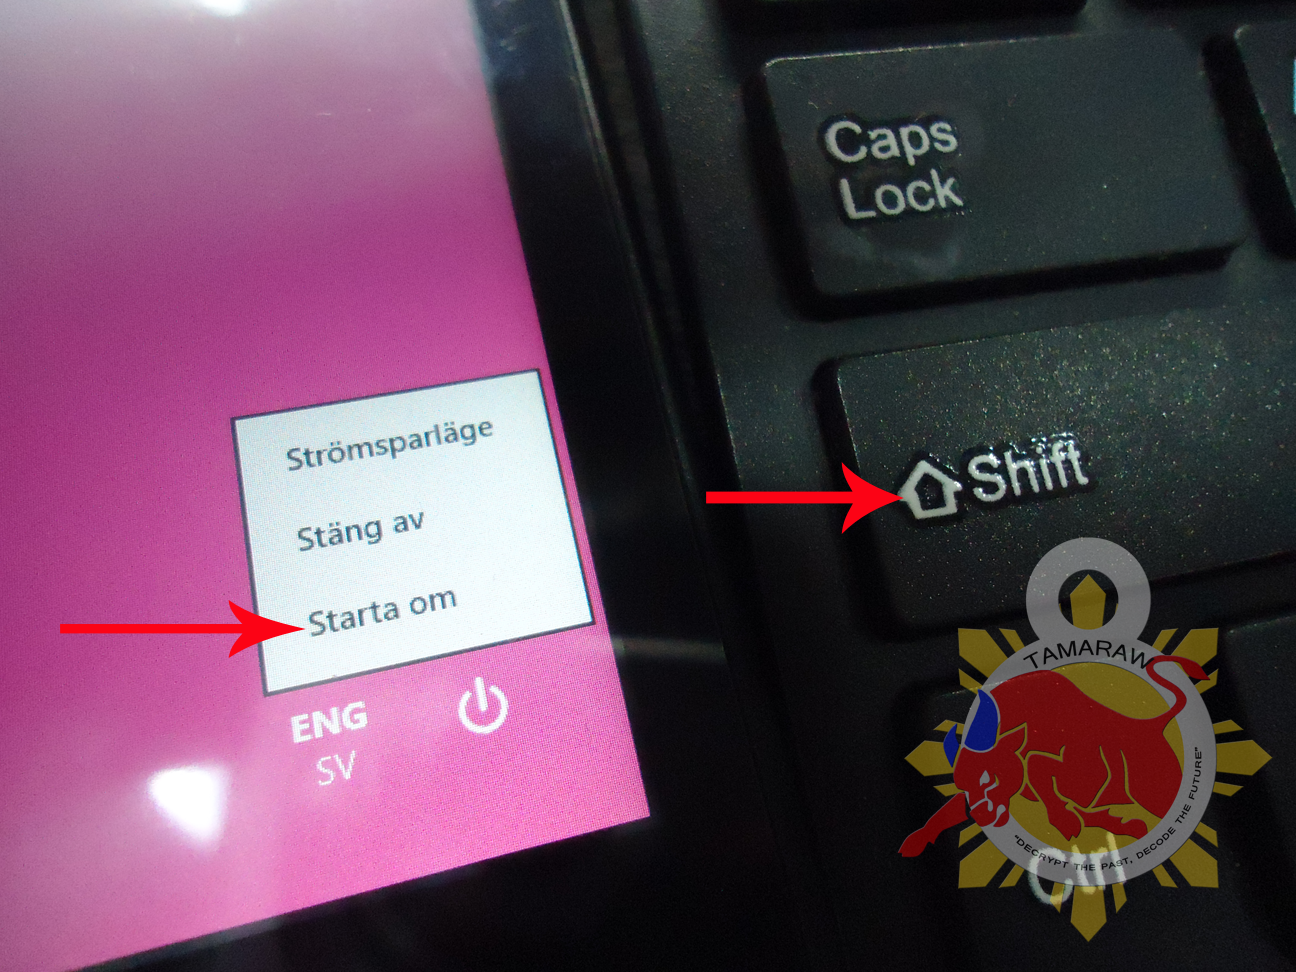 TAMARAW8: Windows Lamina Tablet Forgotten Password, Reset